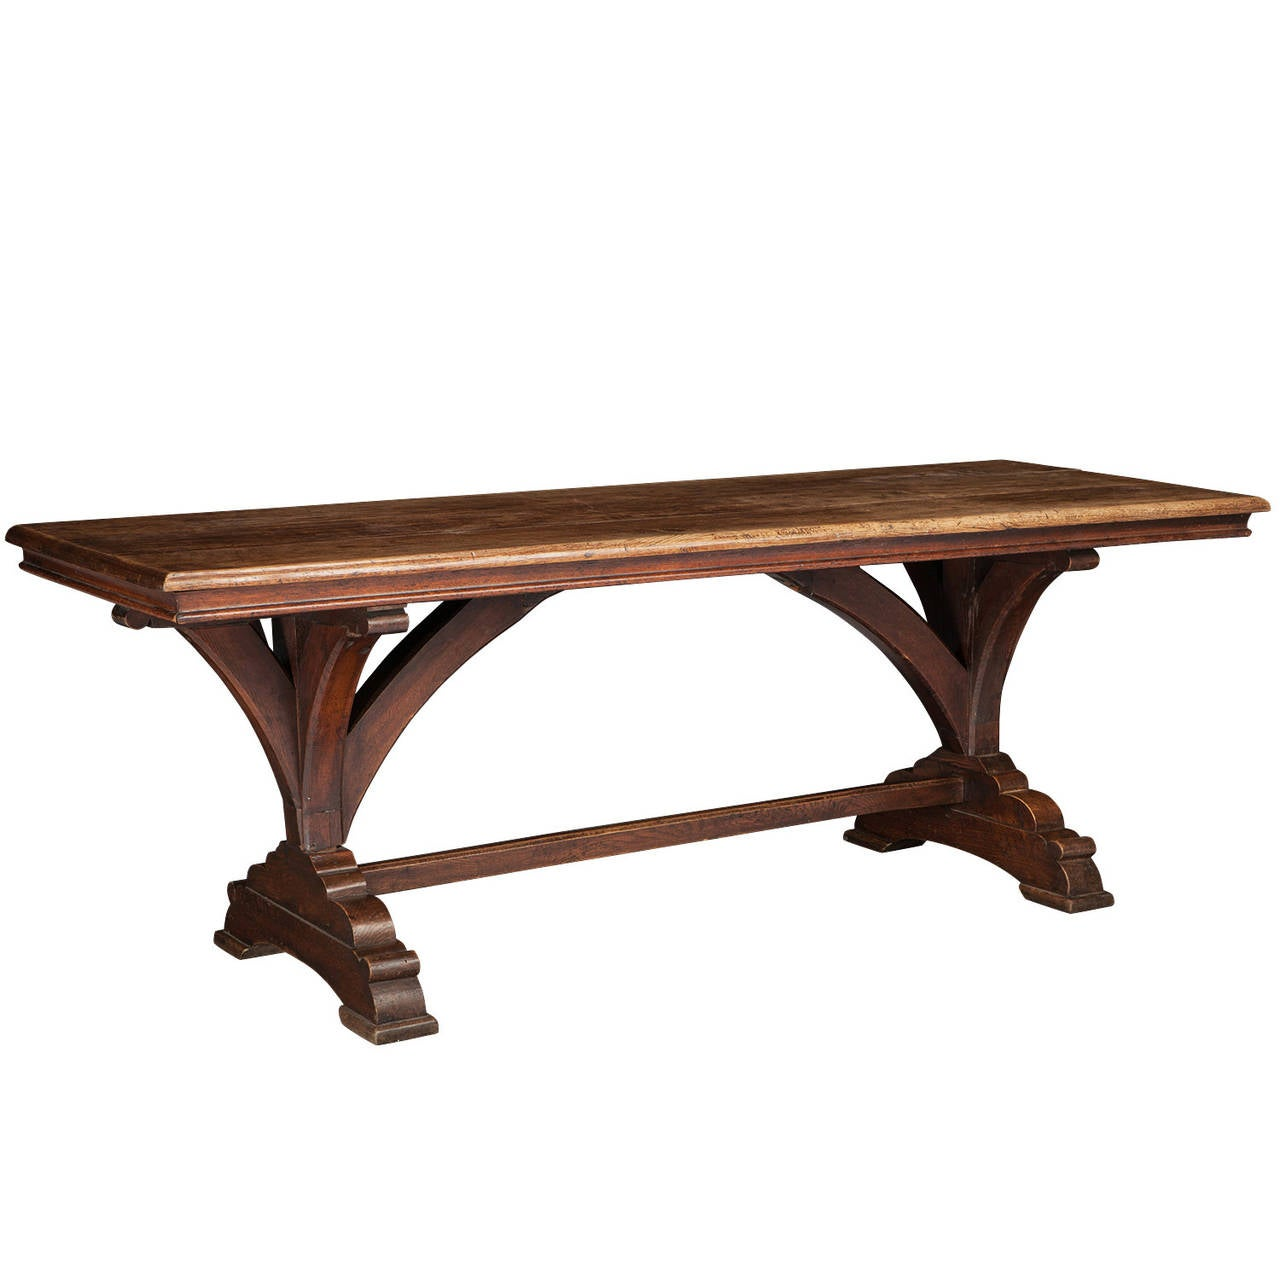 Elegant Gothic Refectory Table For Sale